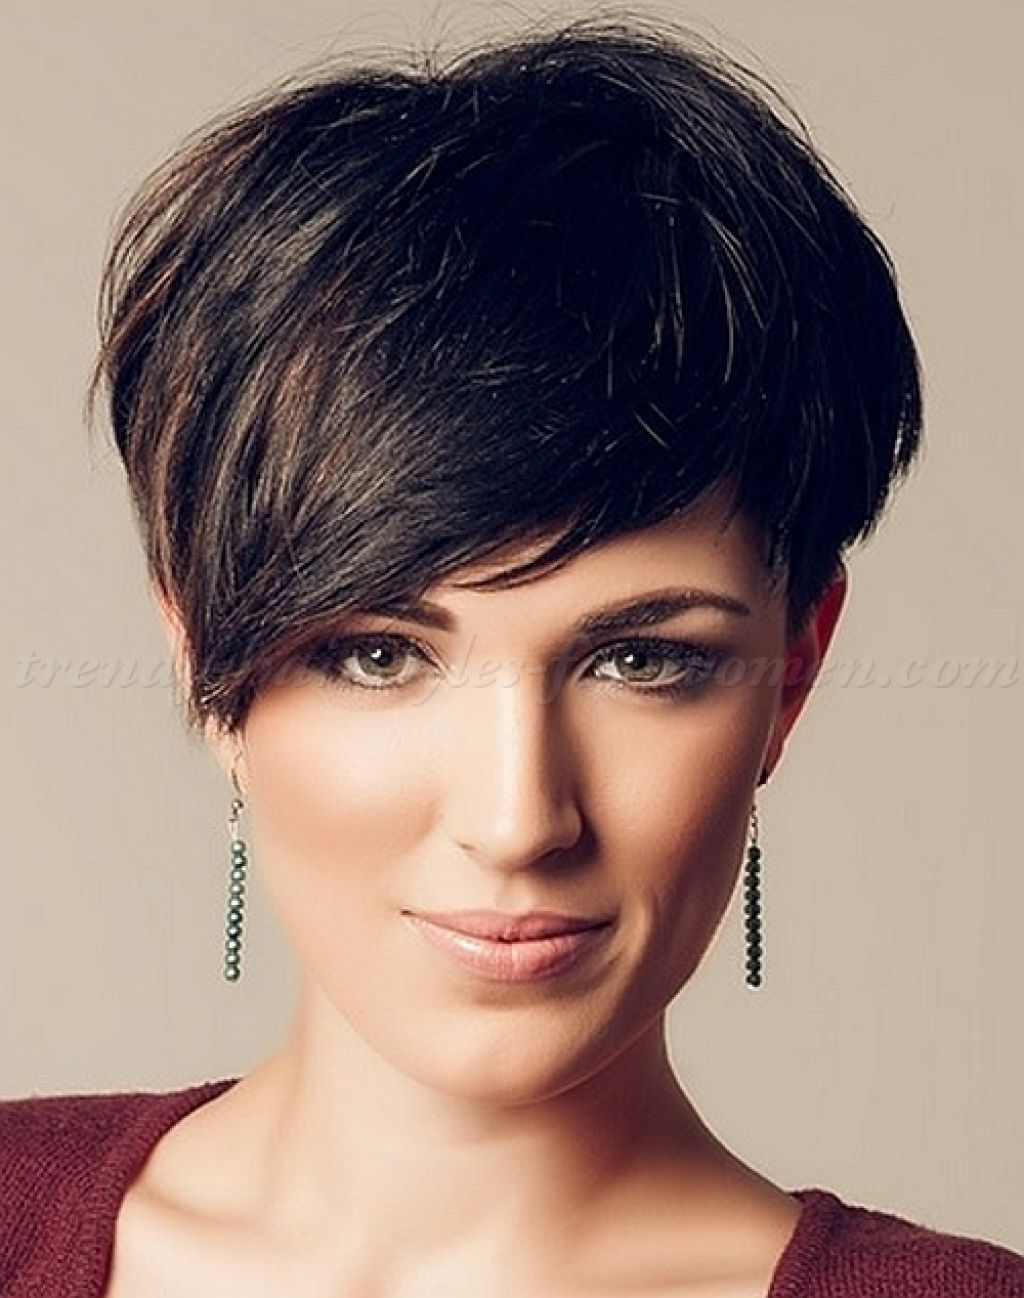 Image Result For Asymmetrical Short Haircuts | Look | Pinterest For Asymmetrical Short Hairstyles (View 6 of 25)